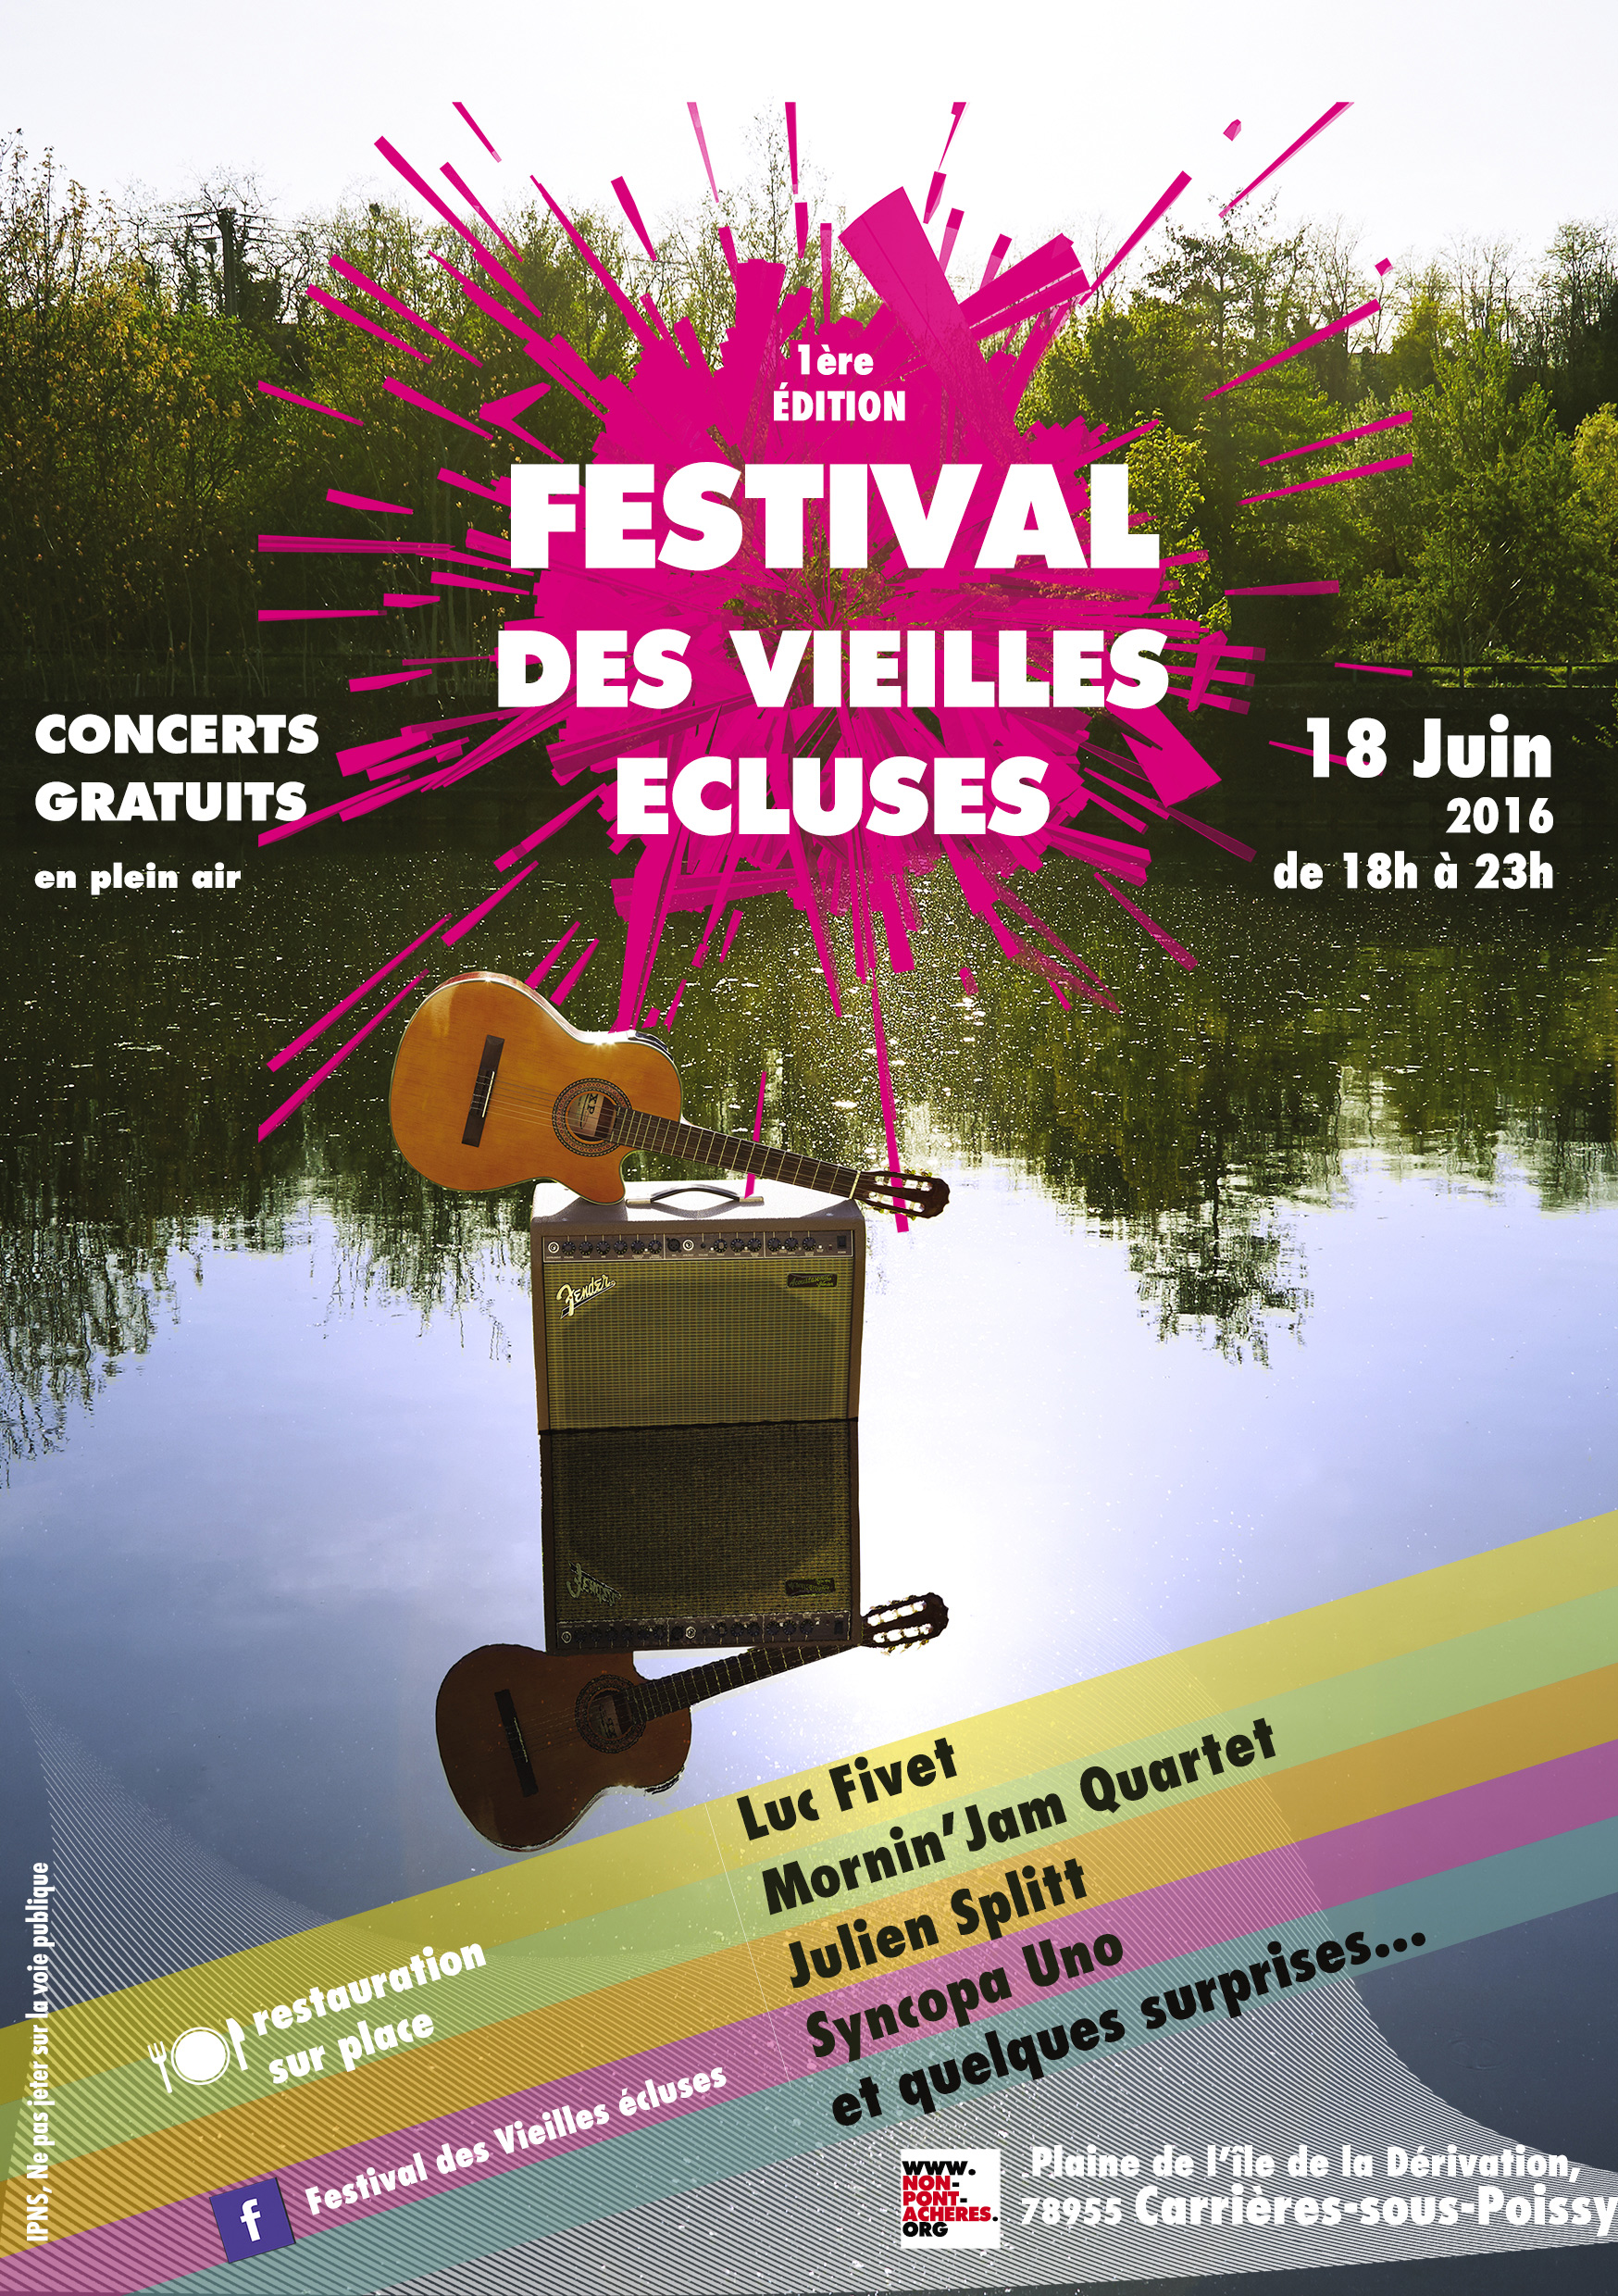 syncopa-uno-festival-vielles-ecluses-2016-A5-flyer